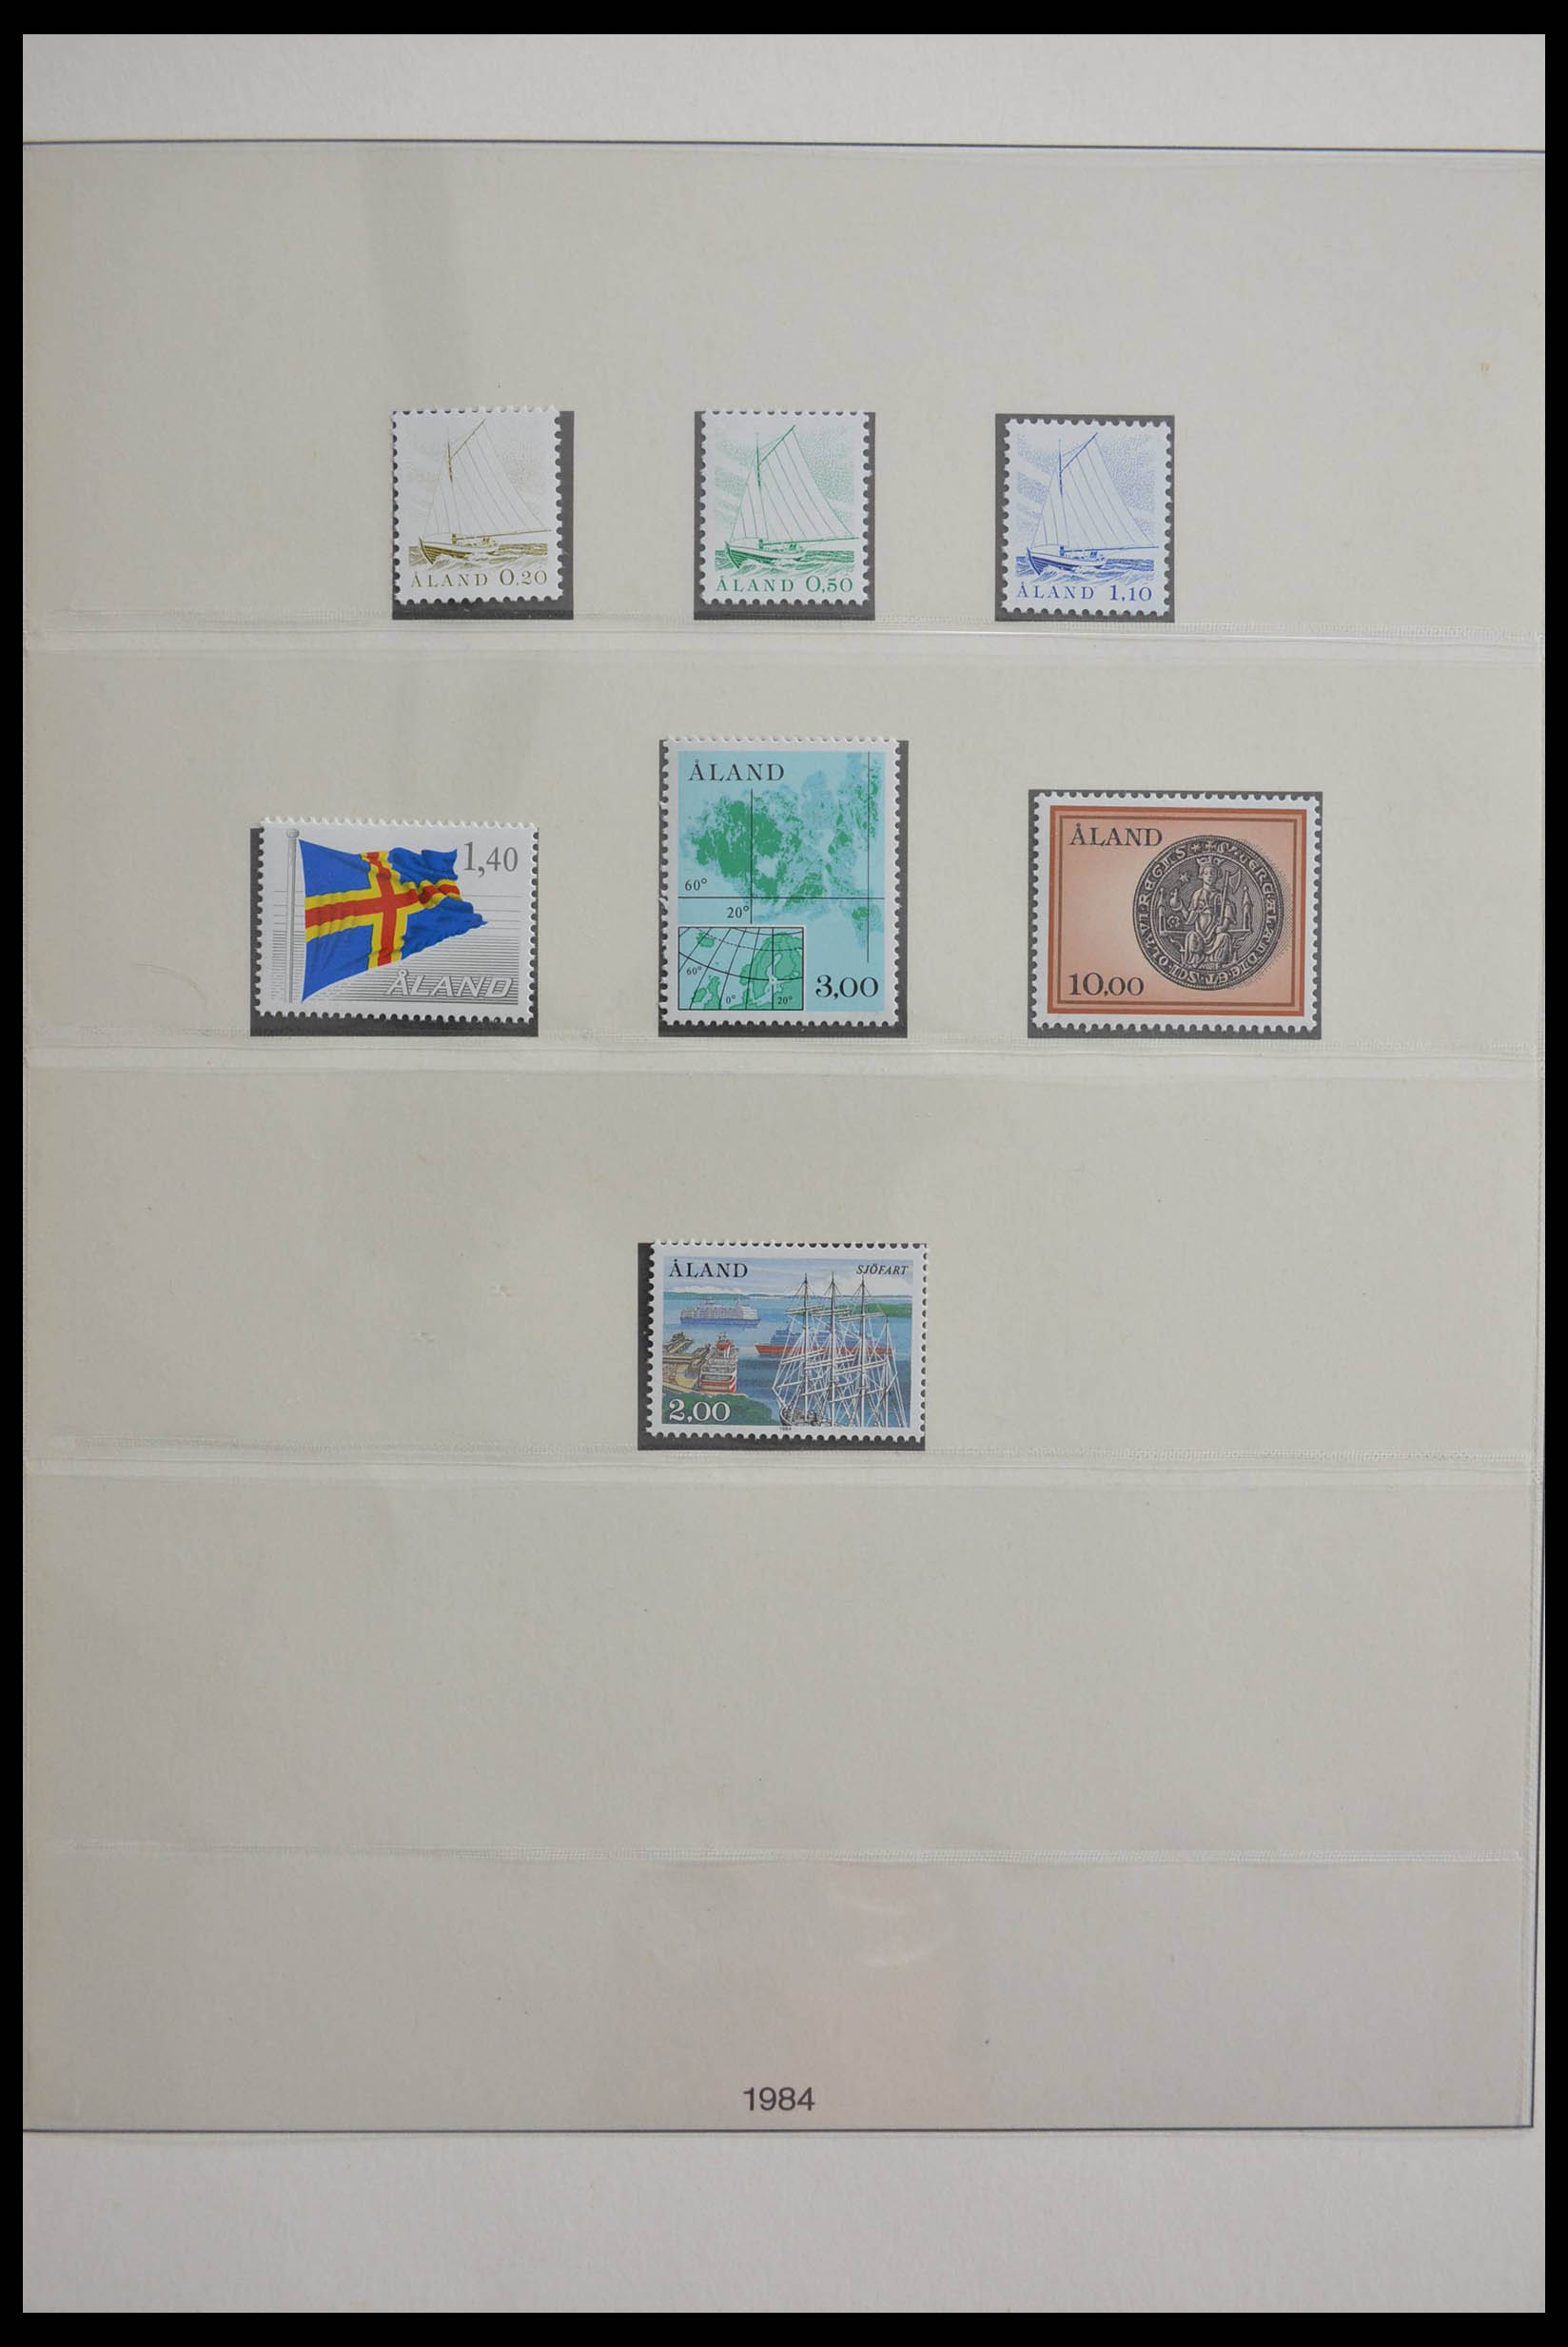 28584 001 - Stamp collection 28584 Aland 1984-2011.